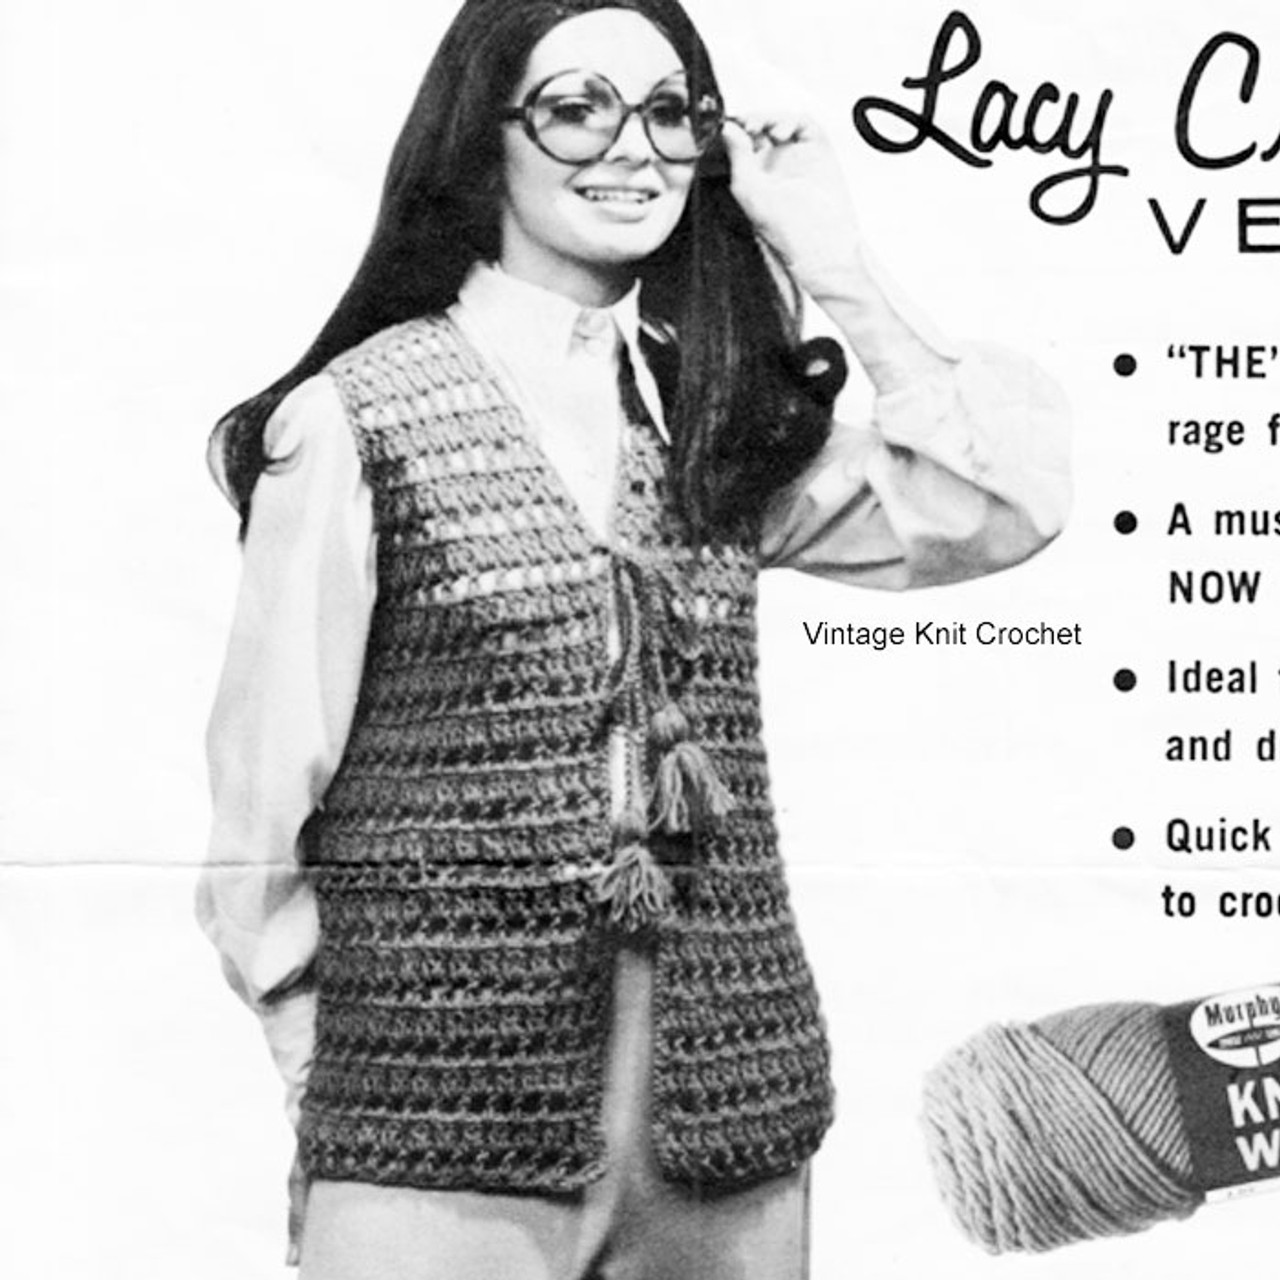 Easy Crochet Lace Vest Pattern in Knitting Worsted